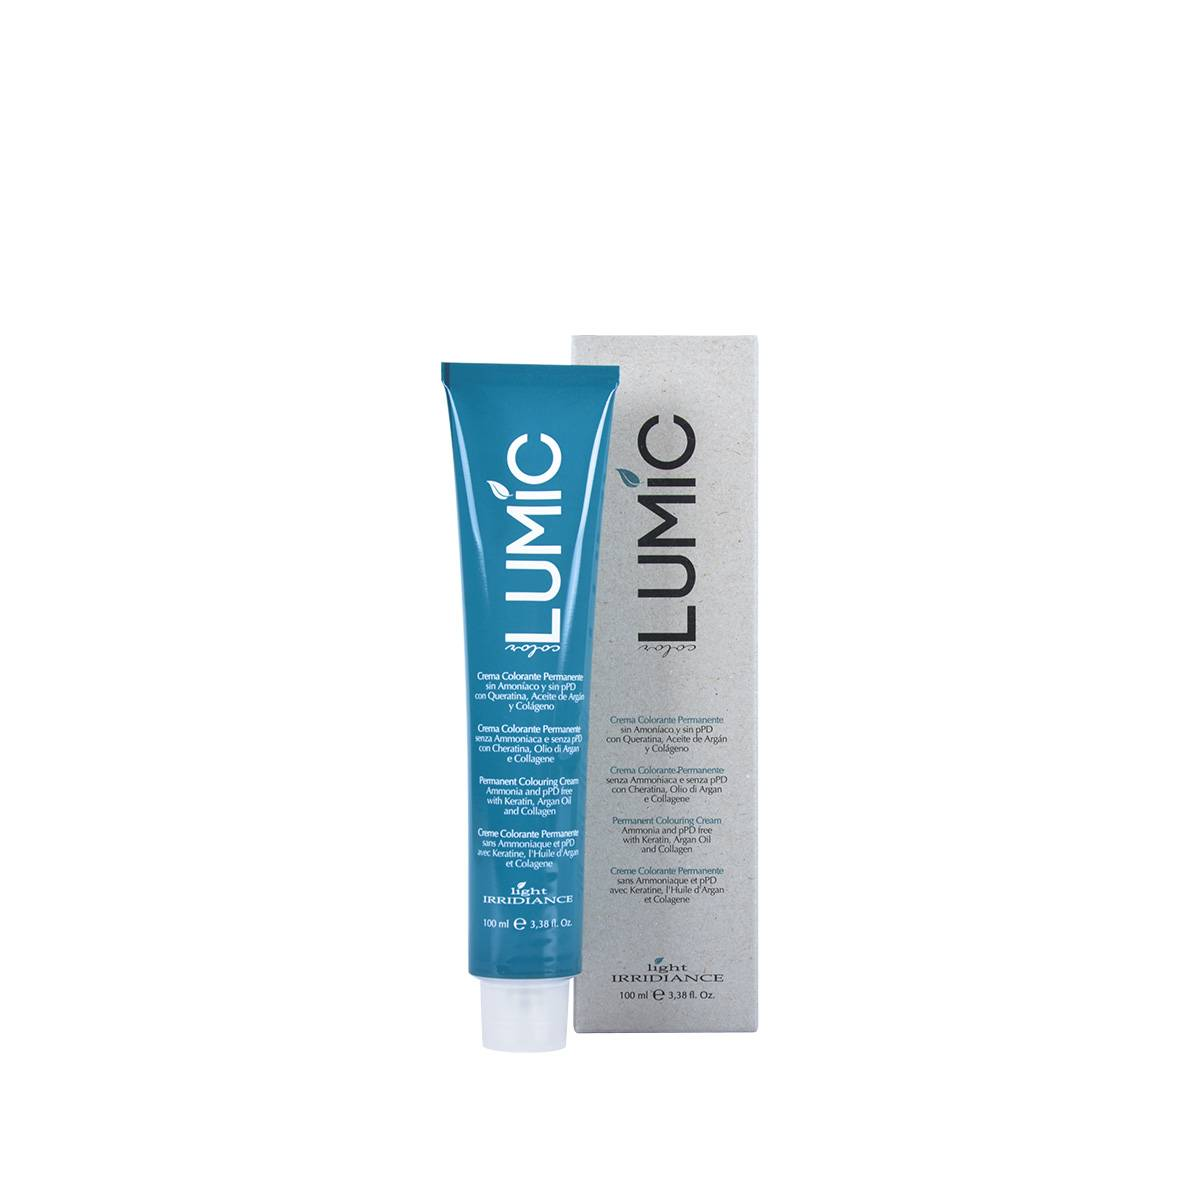 Lumic Crema Colore 100ml Superschiarente Naturale